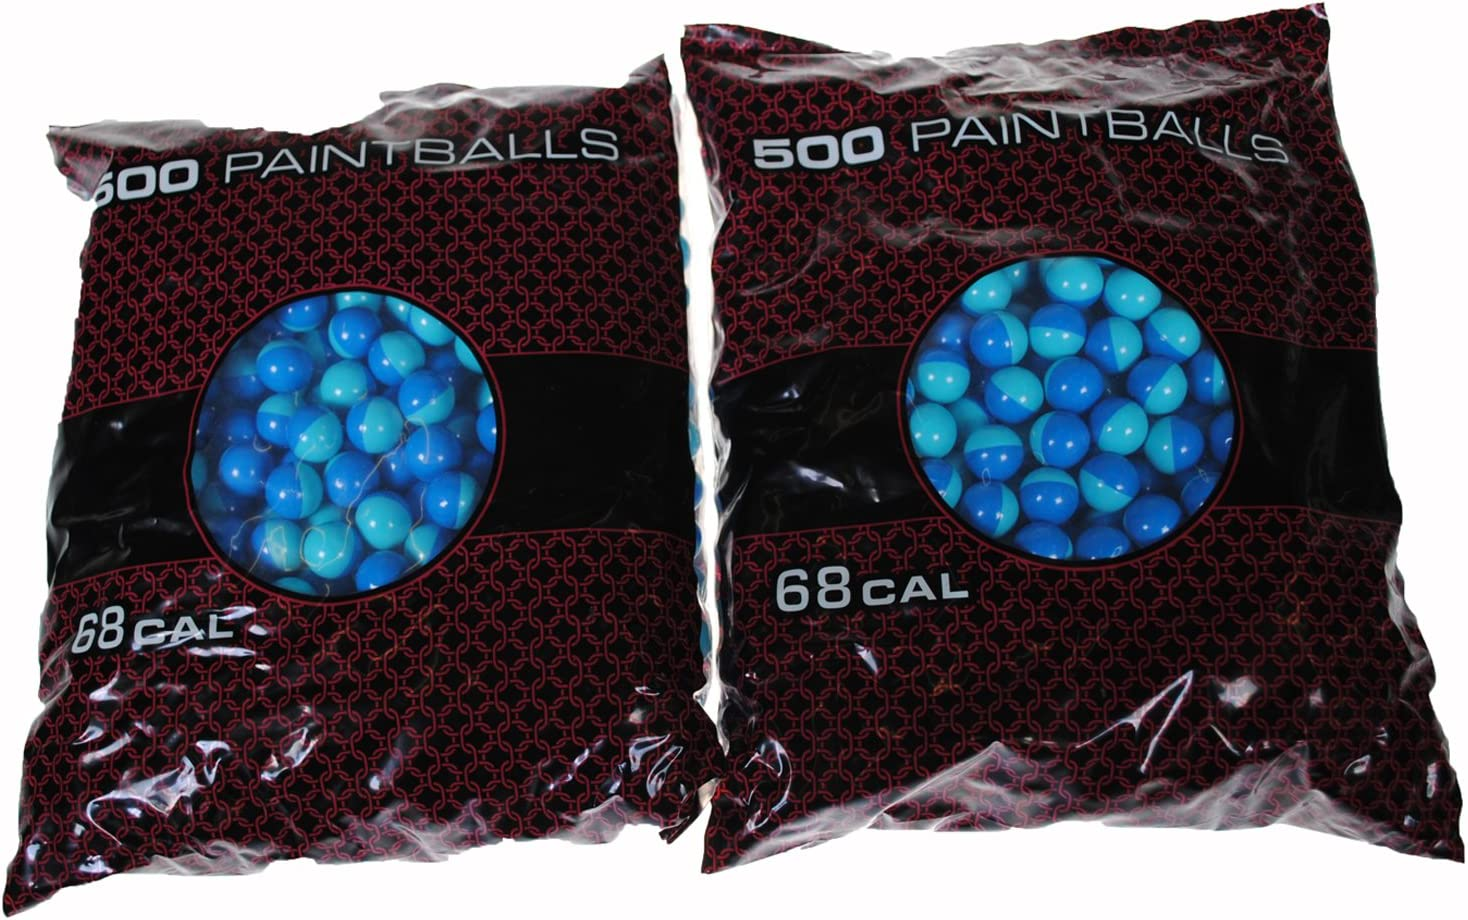 3. GI Sportz XBALL CERTIFIED MIDNIGHT Paintballs